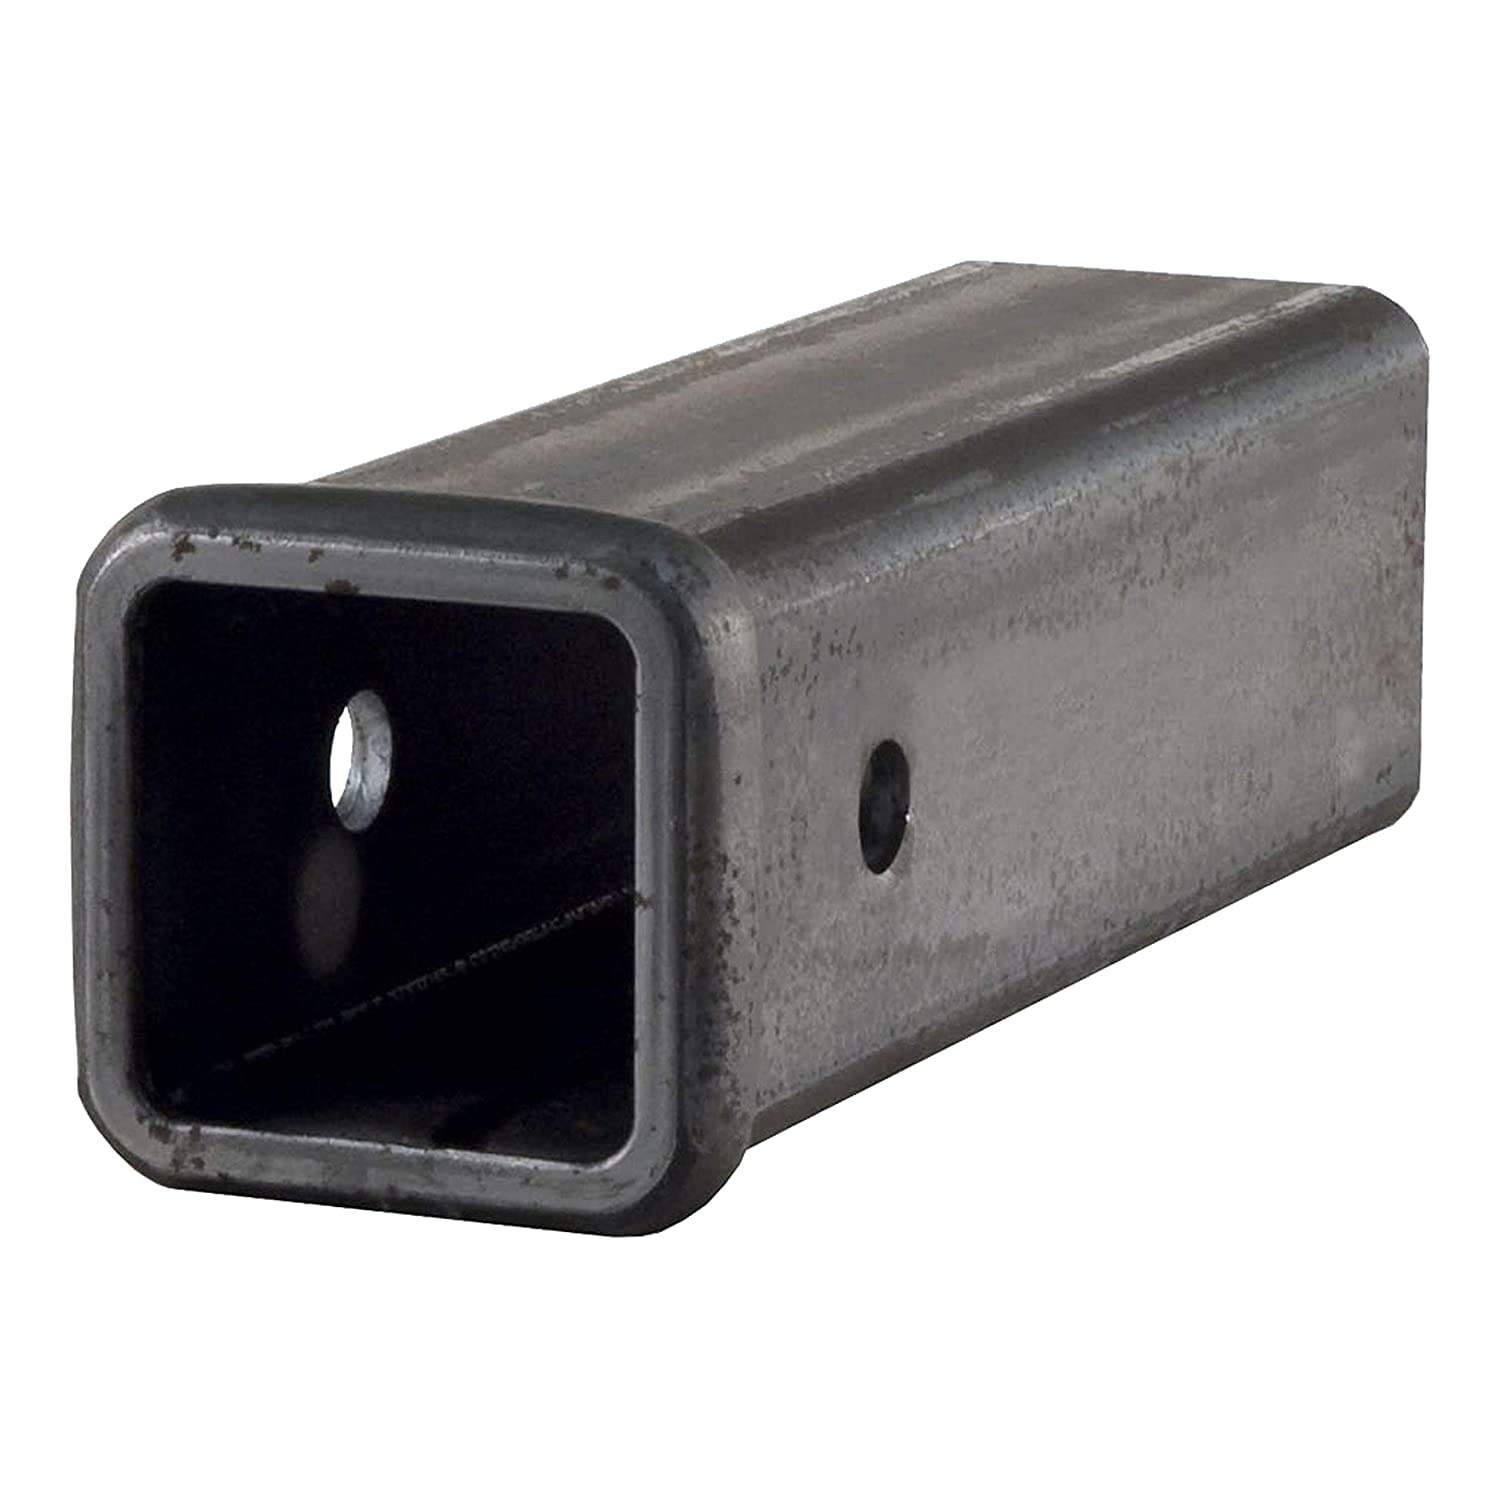 Super Duty Raw Tube Curt Manufacturing 49510 2.5 Receiver Tube 10 Long